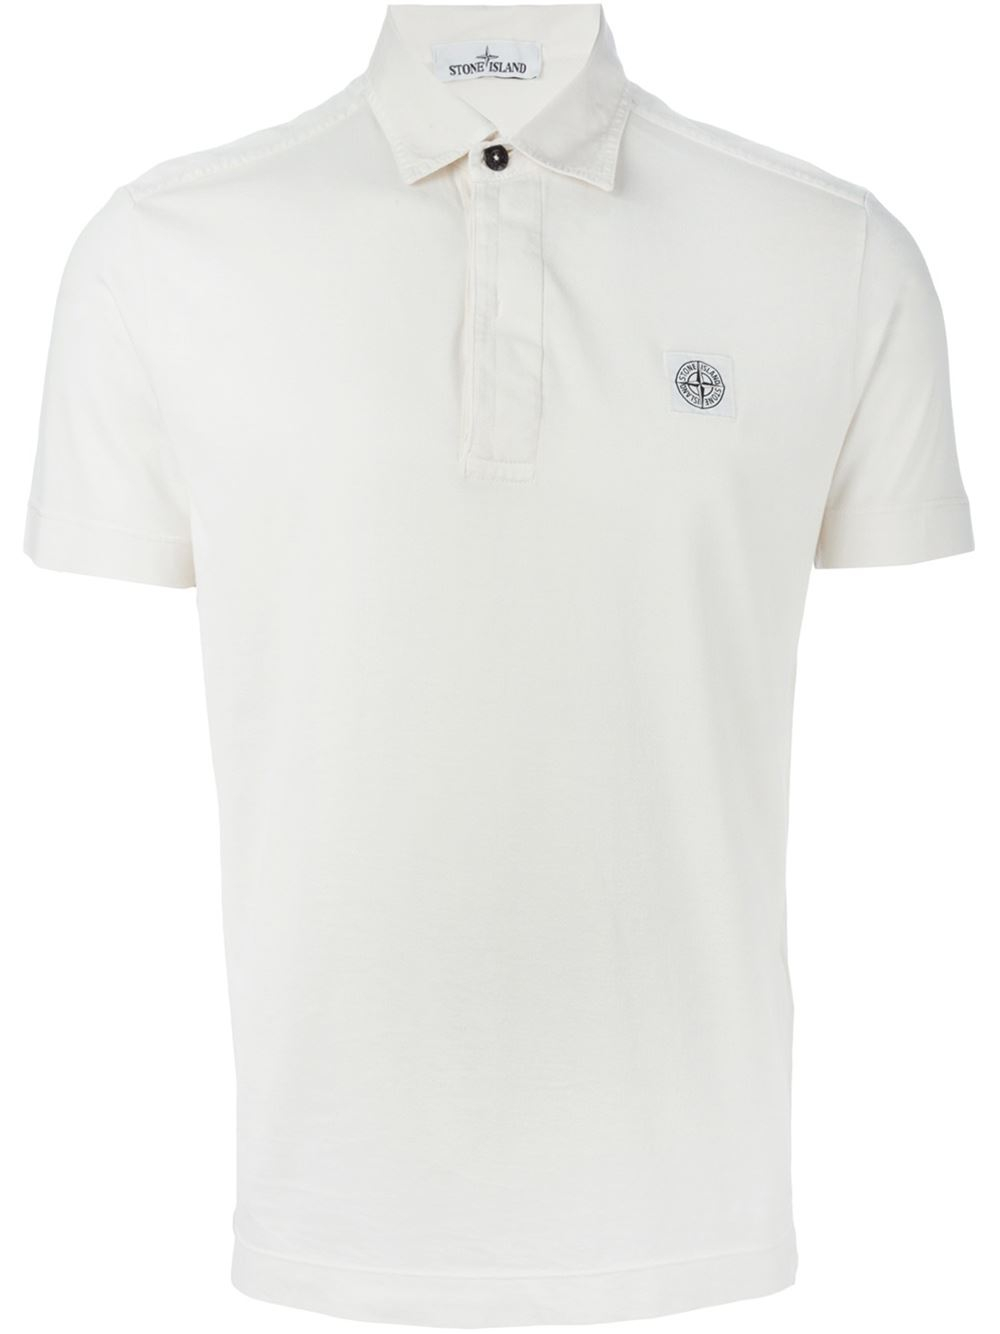 Stone island logo patch cotton polo shirt in beige for men for Cotton polo shirts with logo